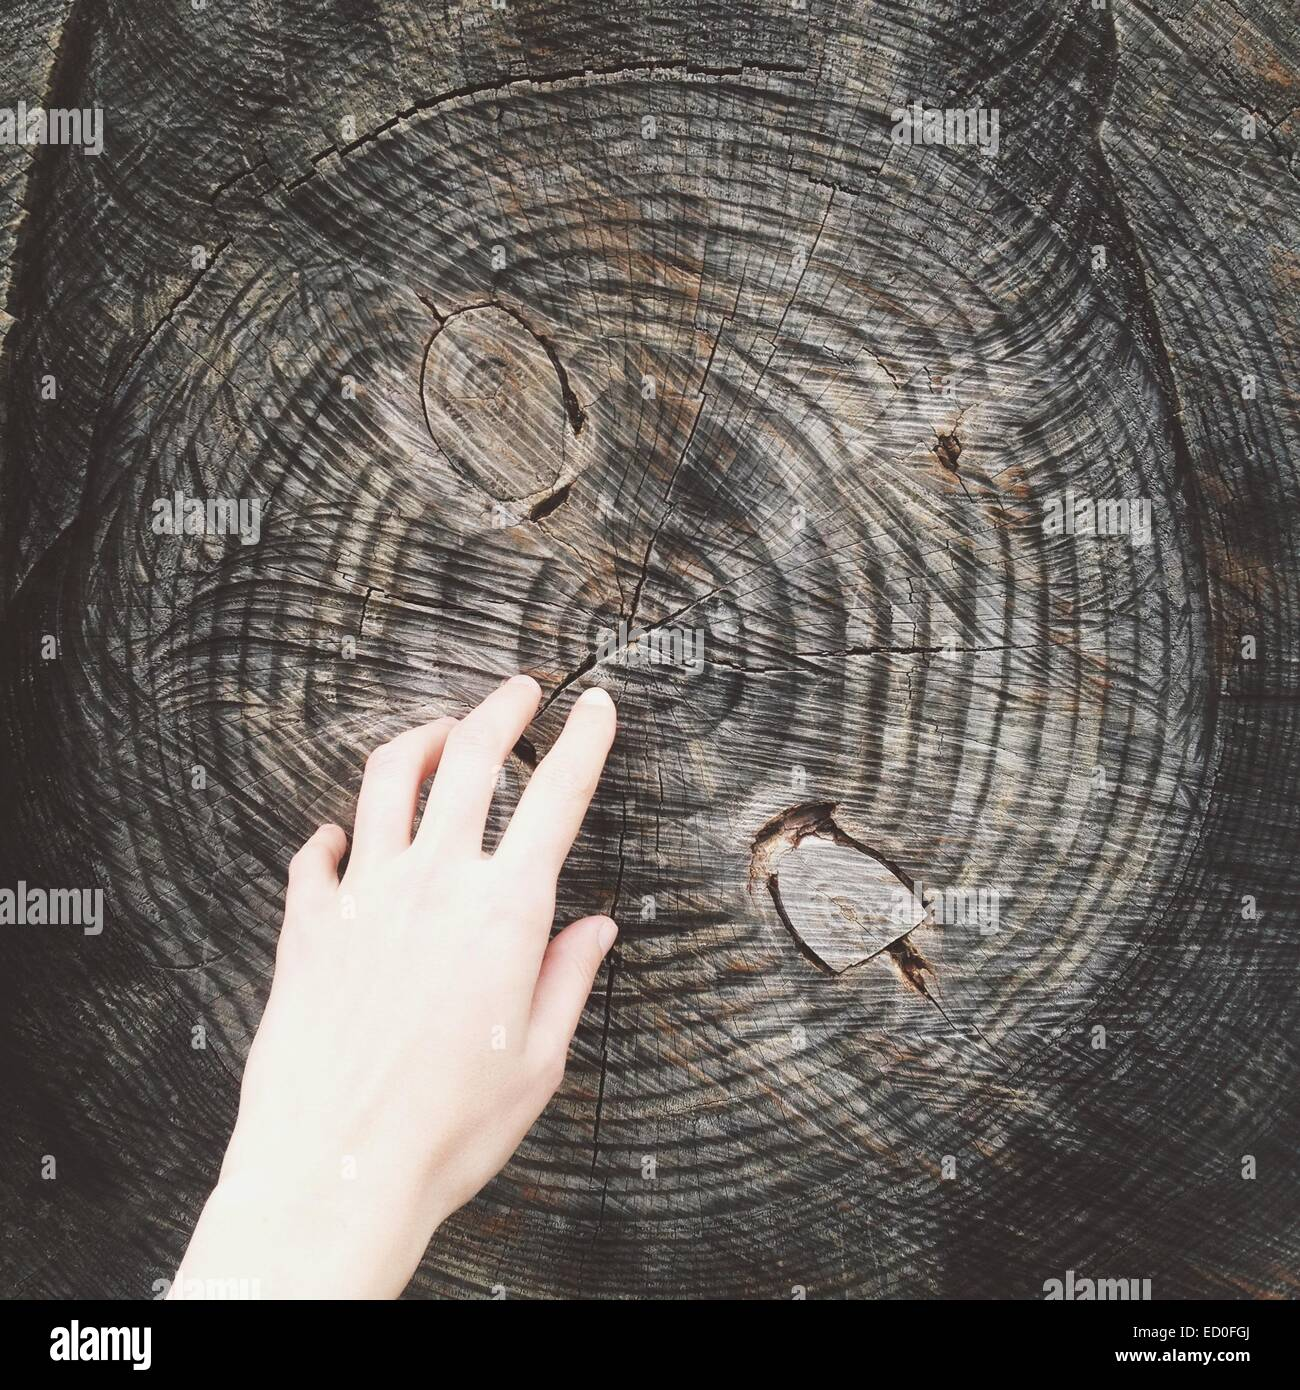 Hand and tree trunk - Stock Image